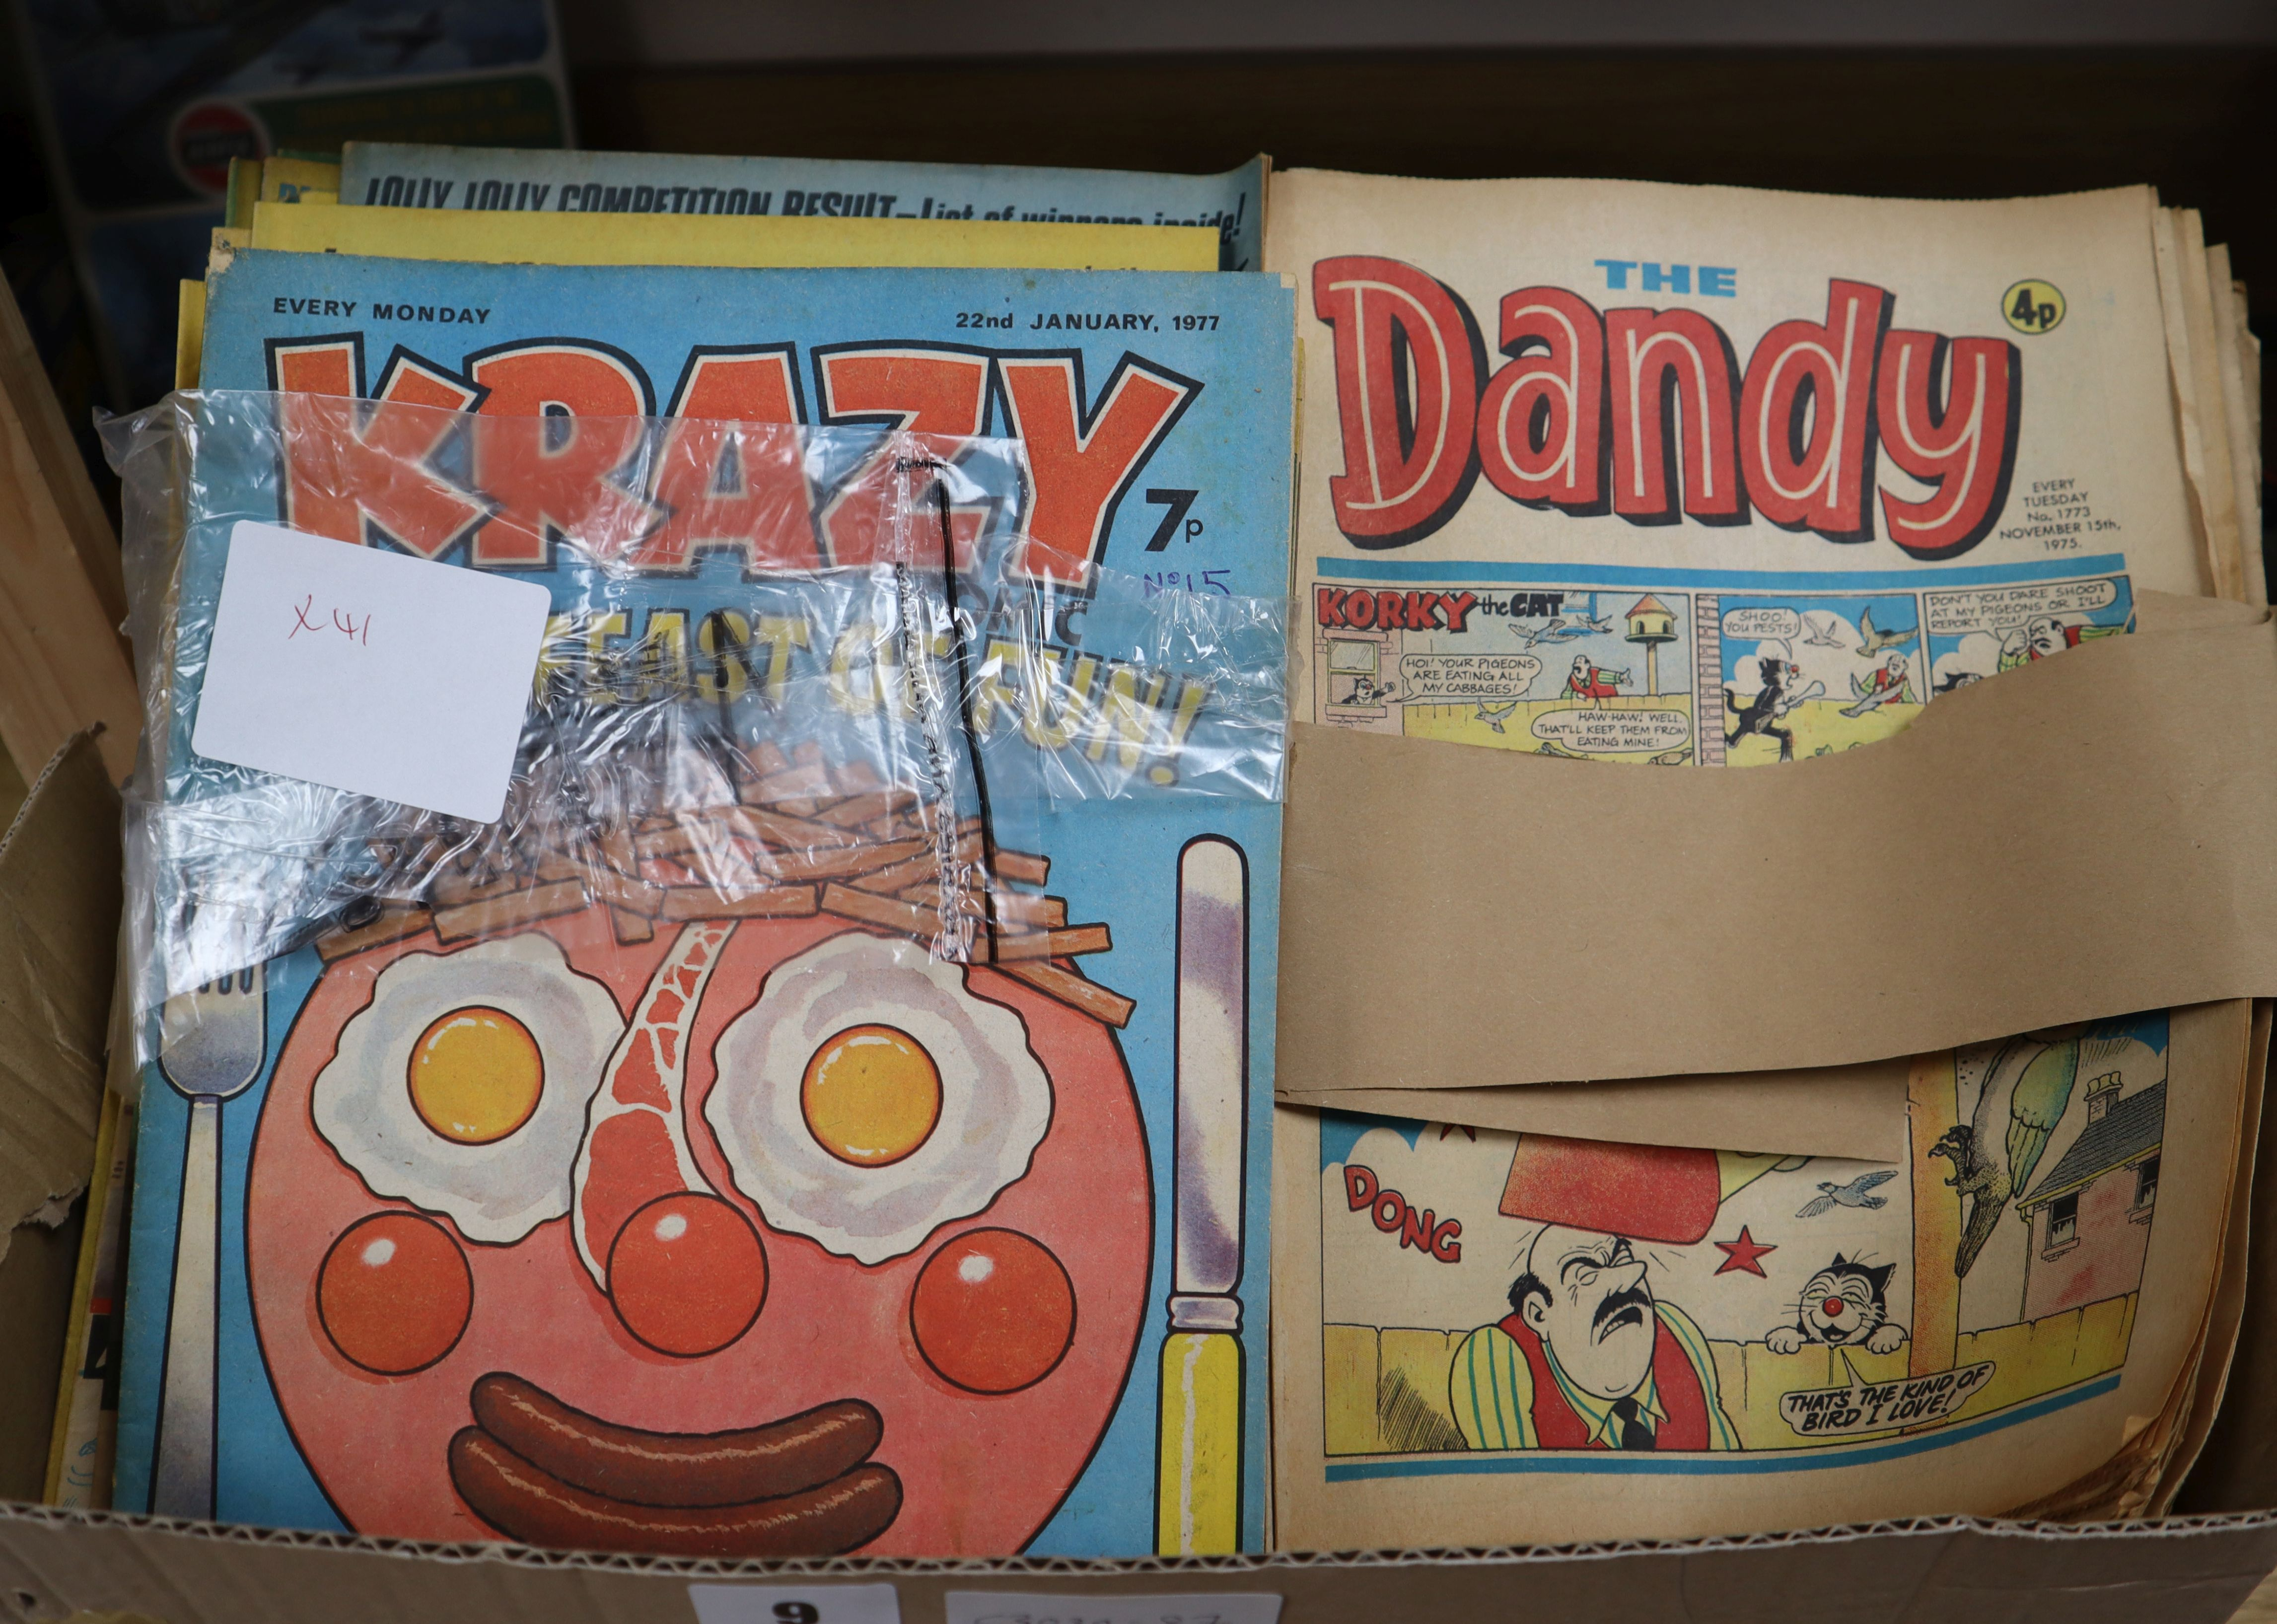 Lot 9 - A collection of vintage Dandy, Krazy and other comics, 1970s and Dinosaur comics and magazines see